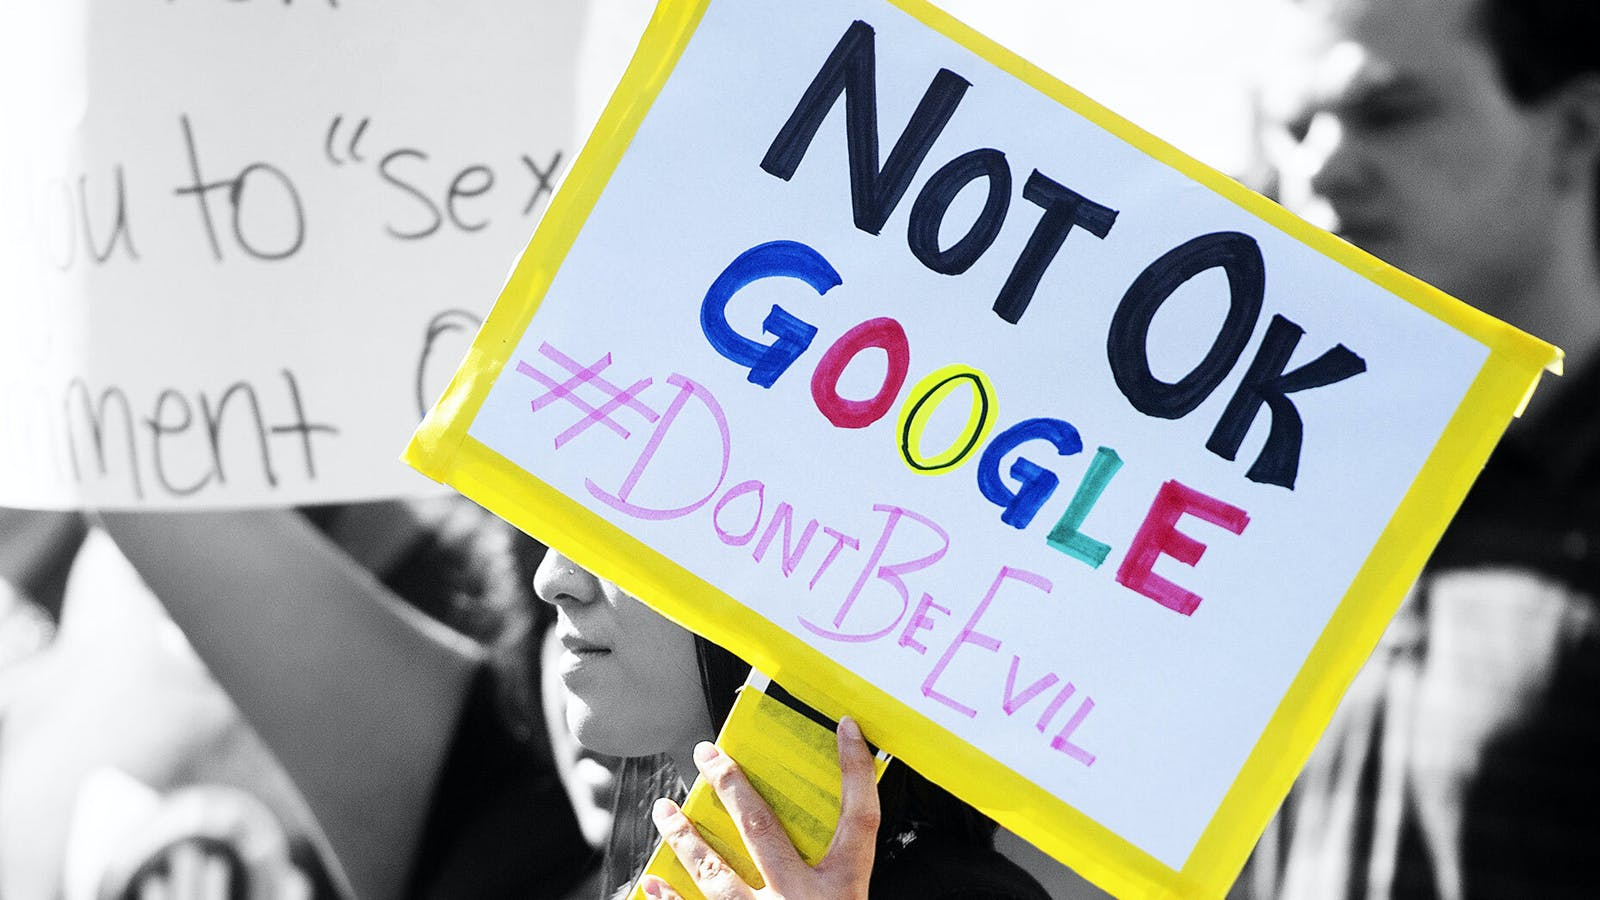 A Google worker protest in 2018. Photo by AP